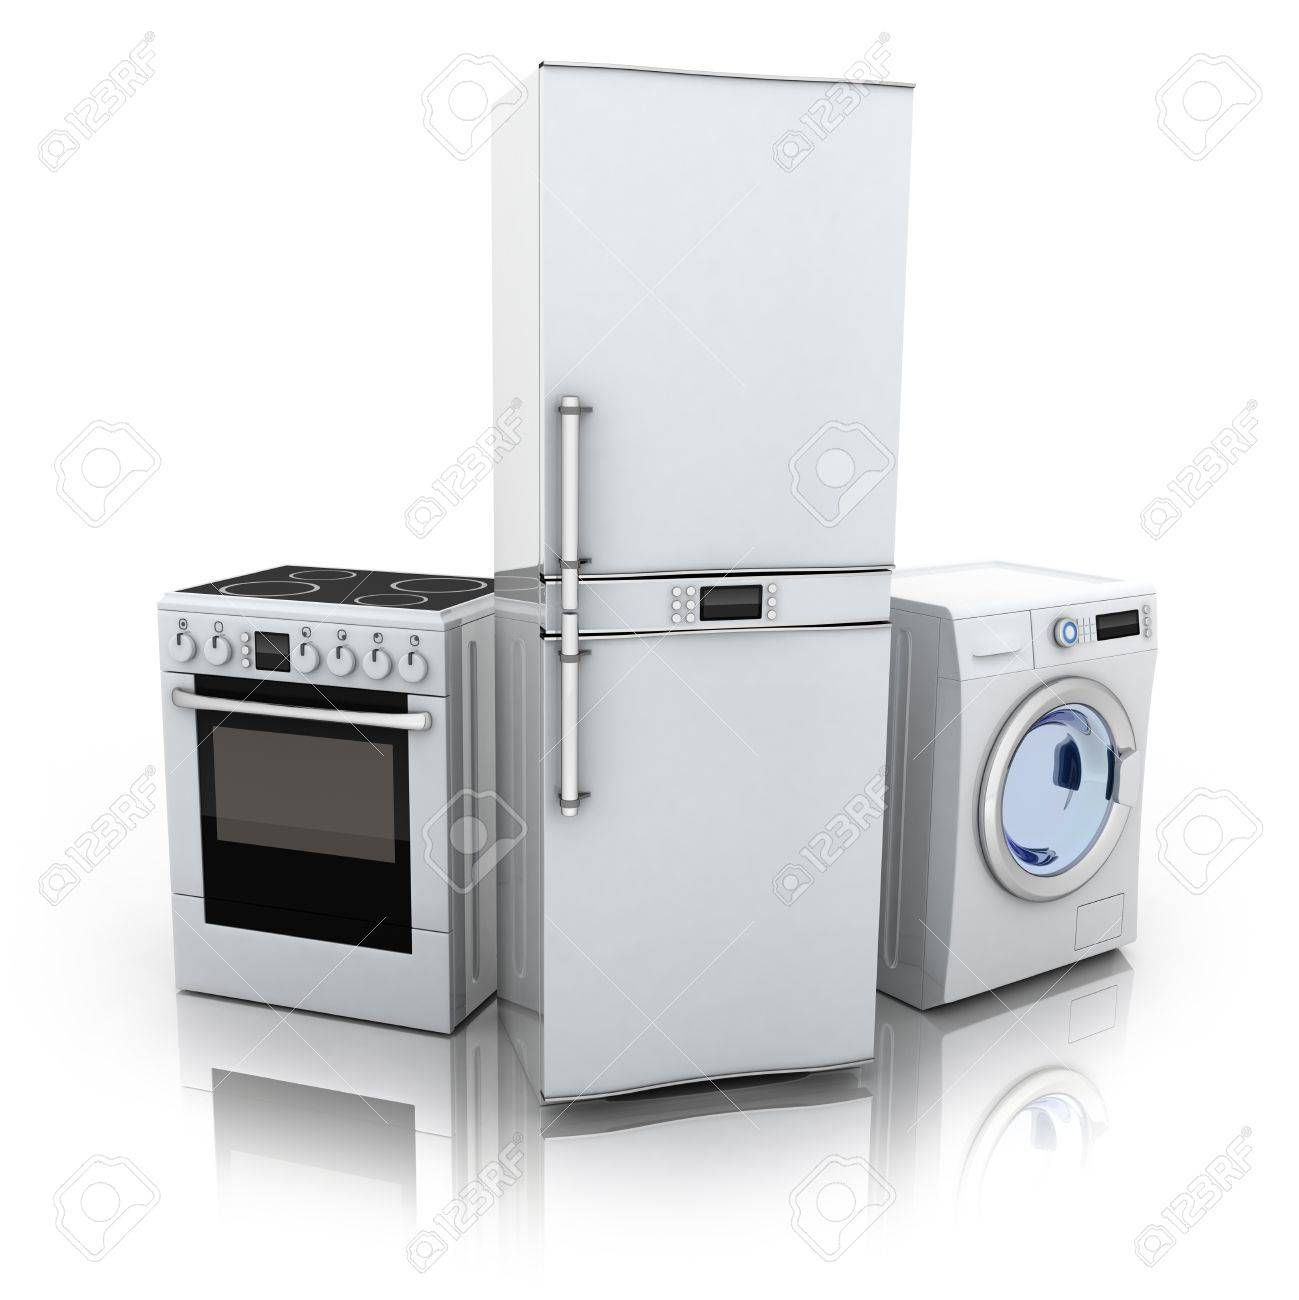 Consumer electronics.Fridge,washer and electric-cooker (done in 3d) Stock Photo - 12326943